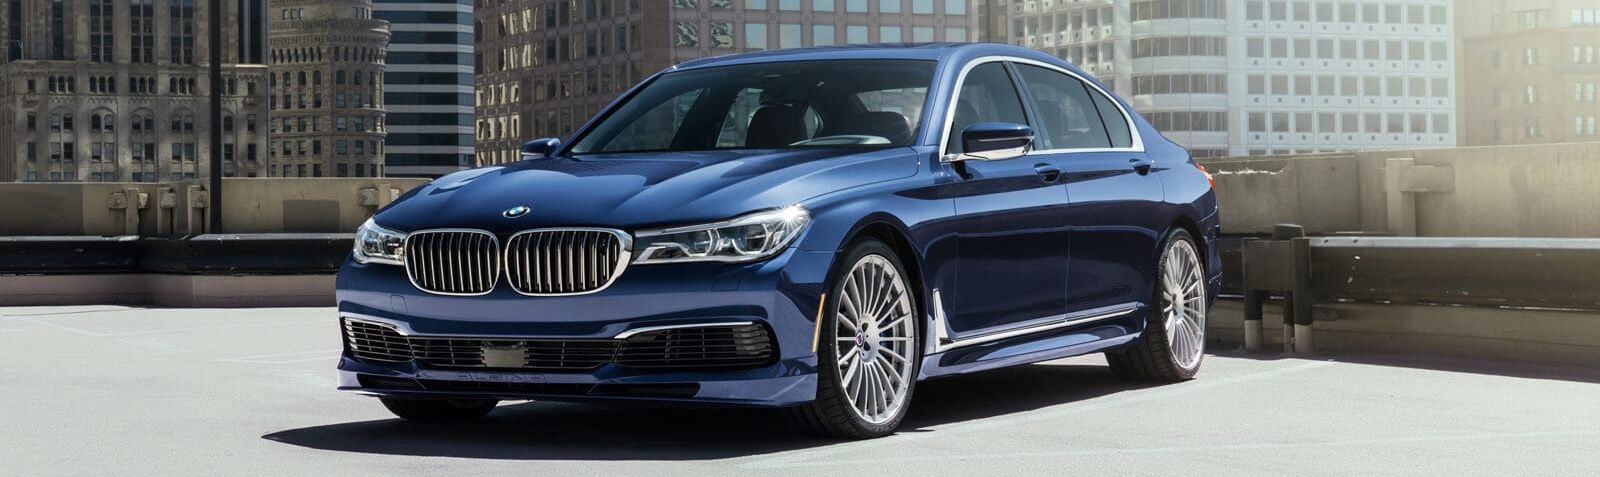 2019 BMW 7 Series for Sale near Valparaiso, IN